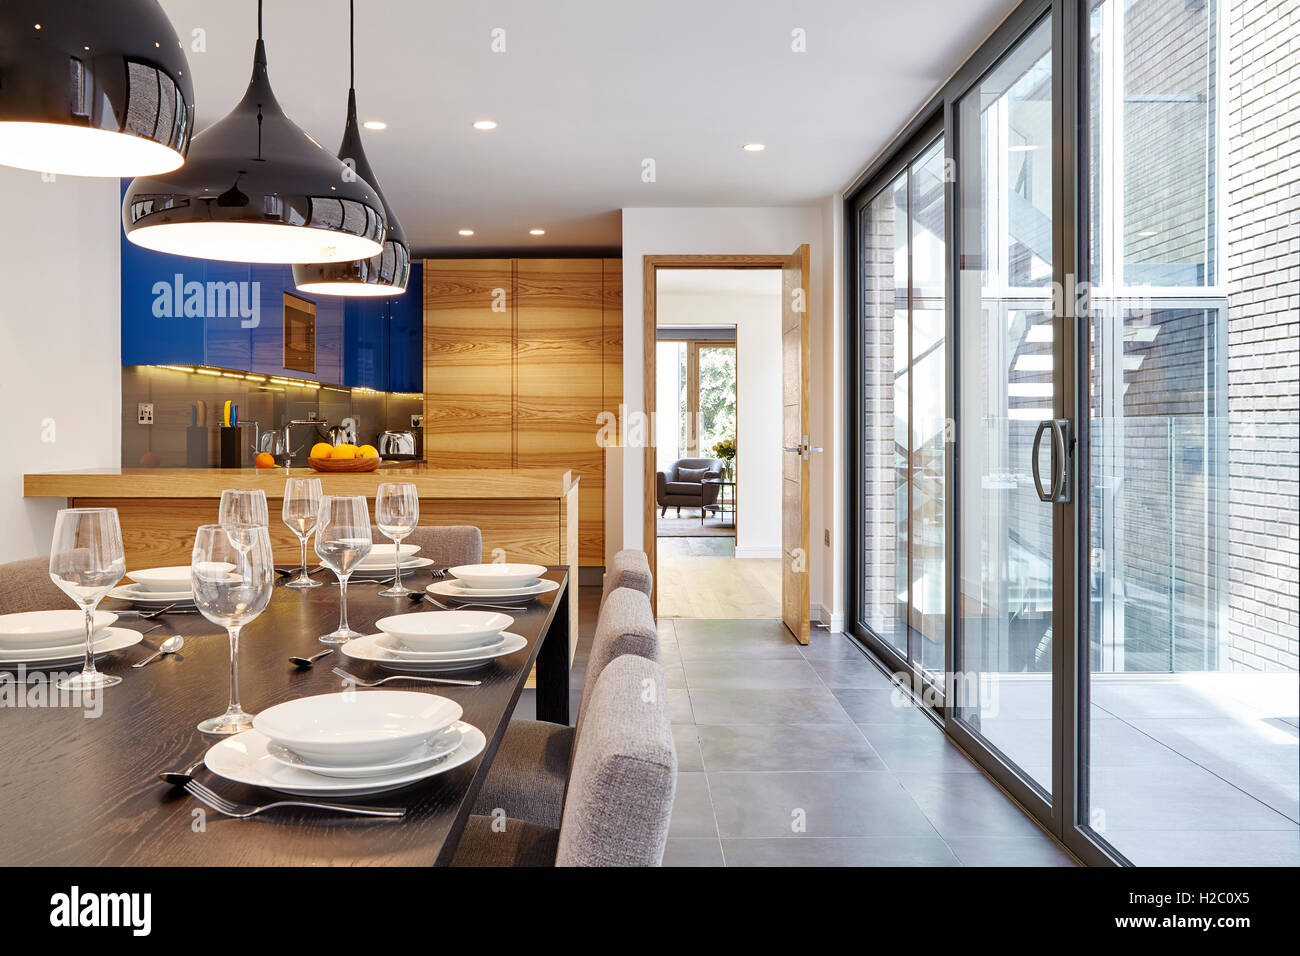 dexter kitchen acrylic sinks dining table looking towards the peel place london united kingdom architect moren associates 2016